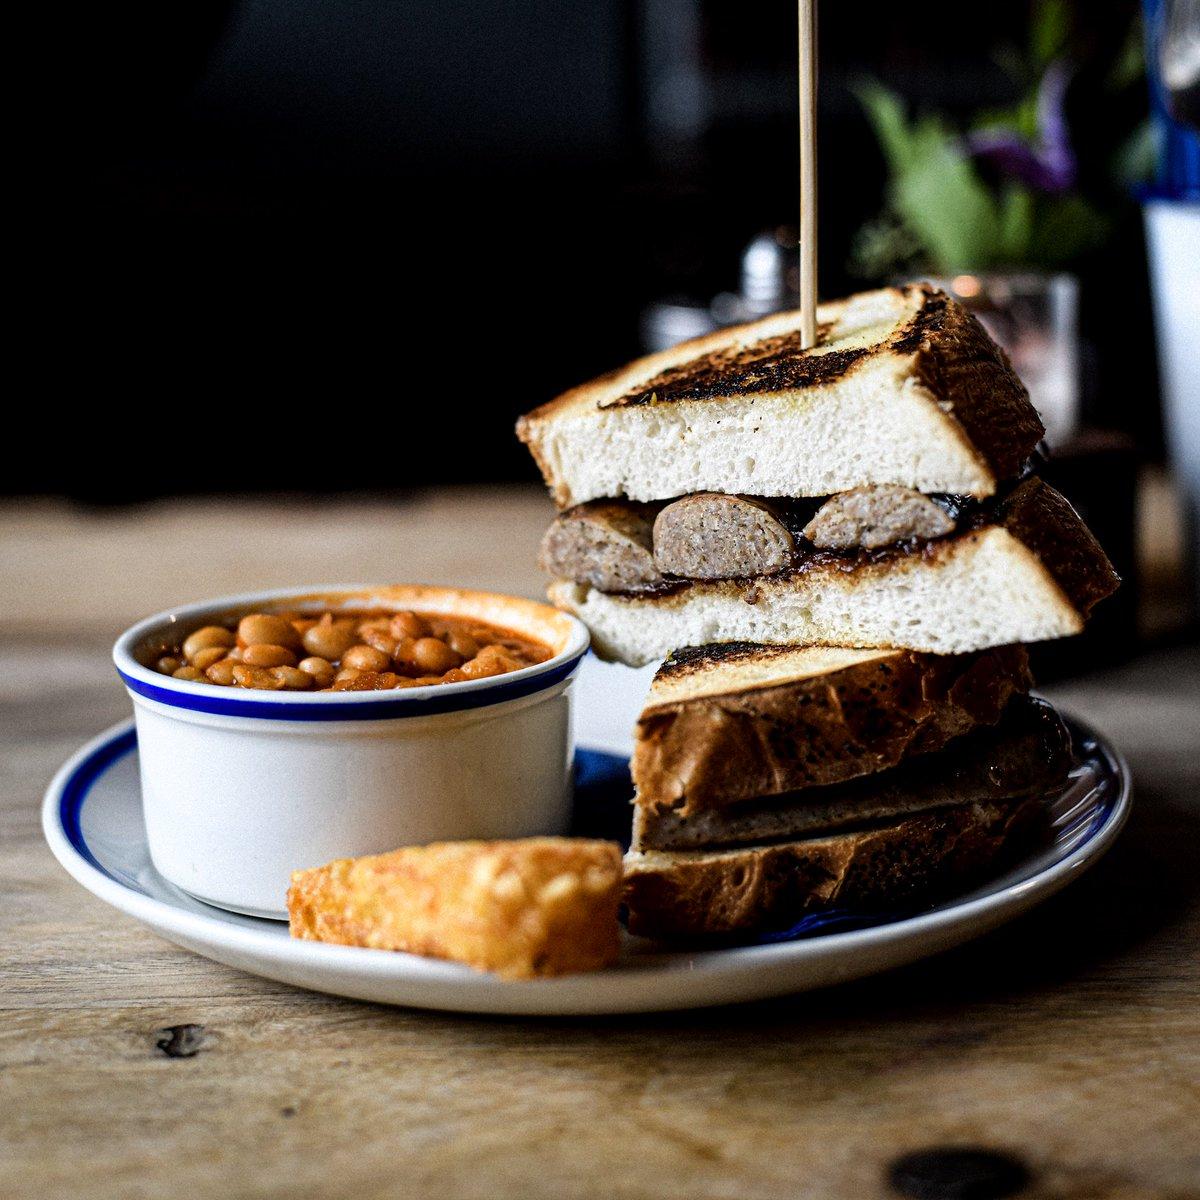 Our brunches are served from 10am on Sat and Sun, and include the sausage and caramelised onion sandwich on toasted house bloomer, served with hash brown and baked beans  We'll just leave this here…  #ilovebreakfast #breakfastideas #breakfastfood #breakfastgoals #weekendbrunch <br>http://pic.twitter.com/KO8QgjPJrl